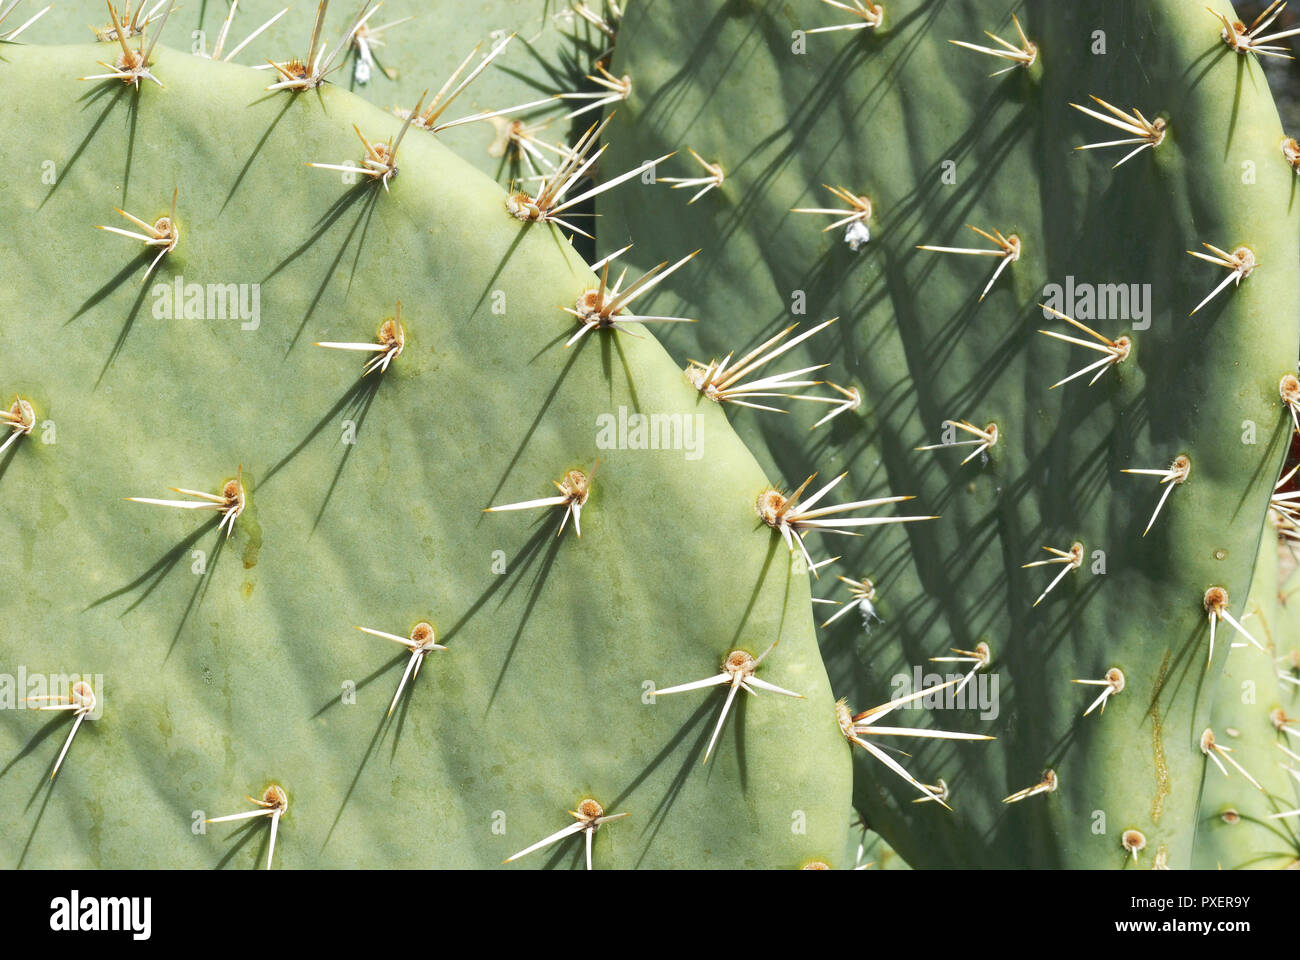 Detail showing spines of prickly pear cactus plants commonly found in the southwestern United States. - Stock Image